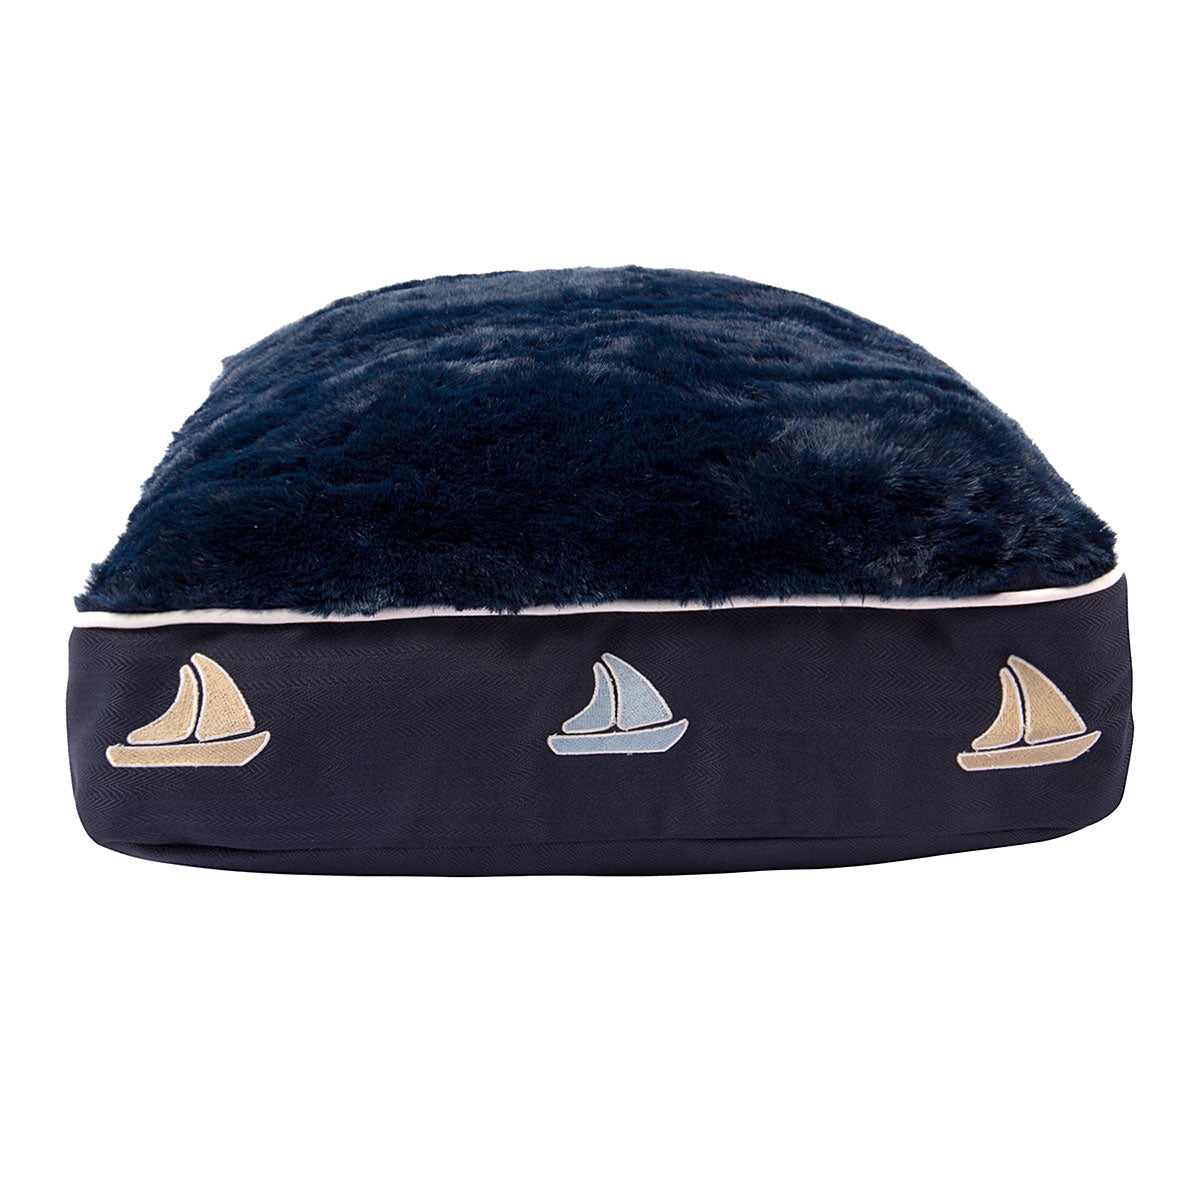 Halo Sailboat Rectangular Dog Bed_2772